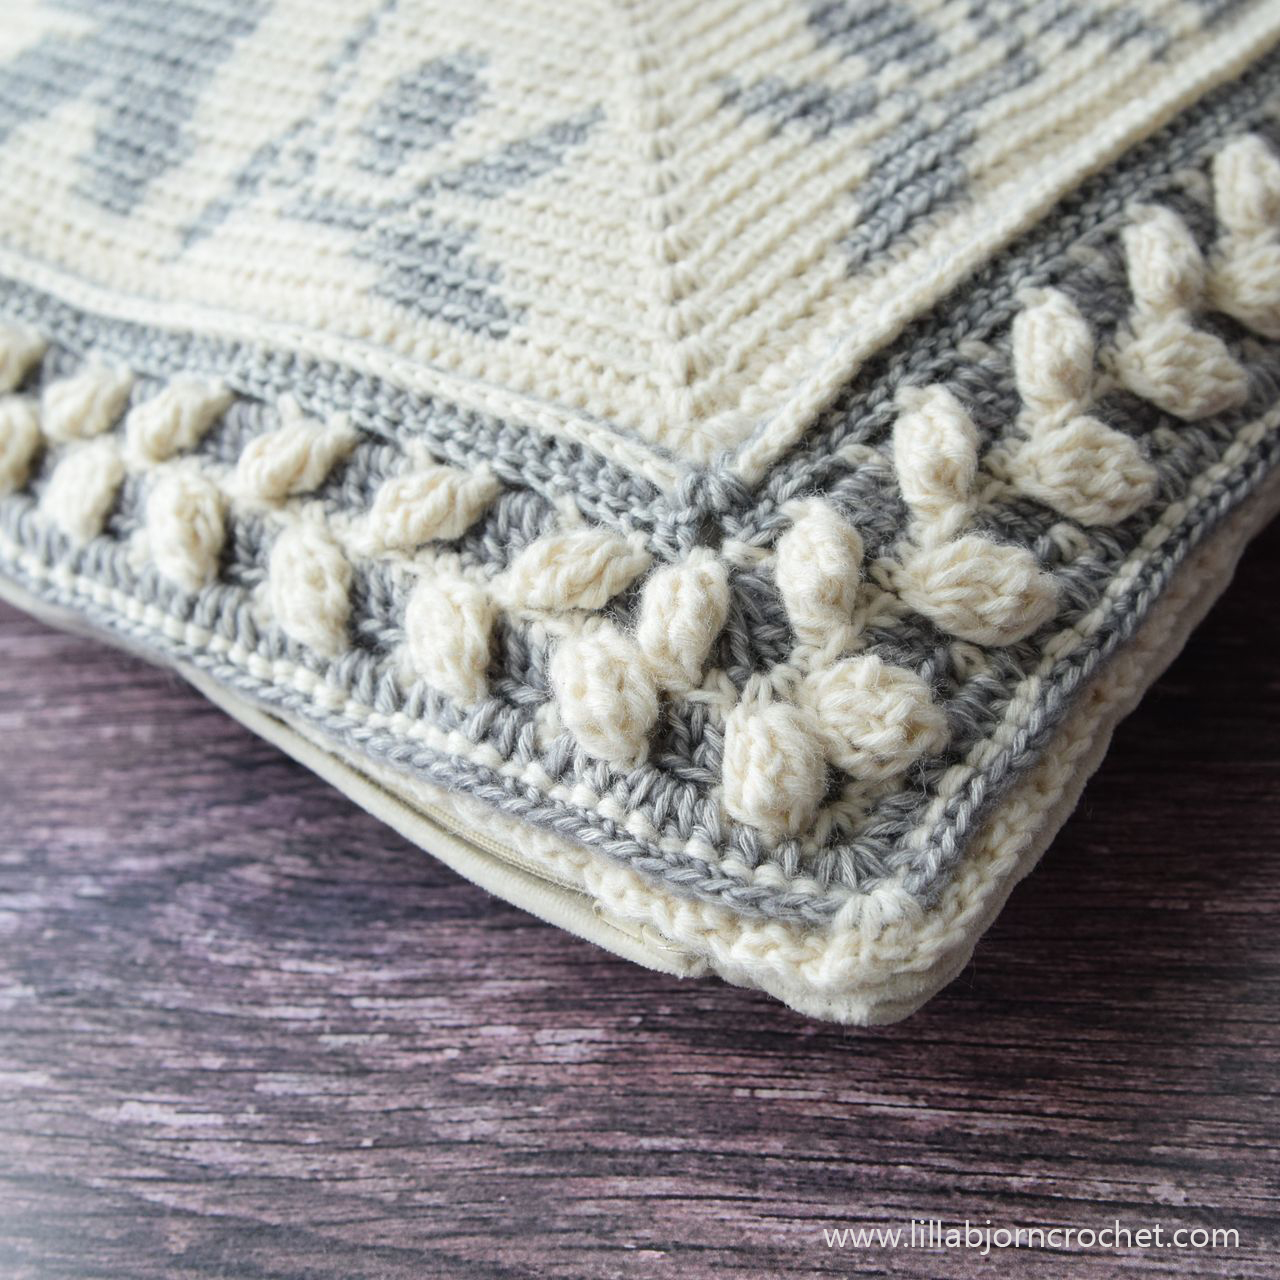 DOVE square pattern combines tapestry and overlay crochet techniques. www.lillabjorncrochet.com